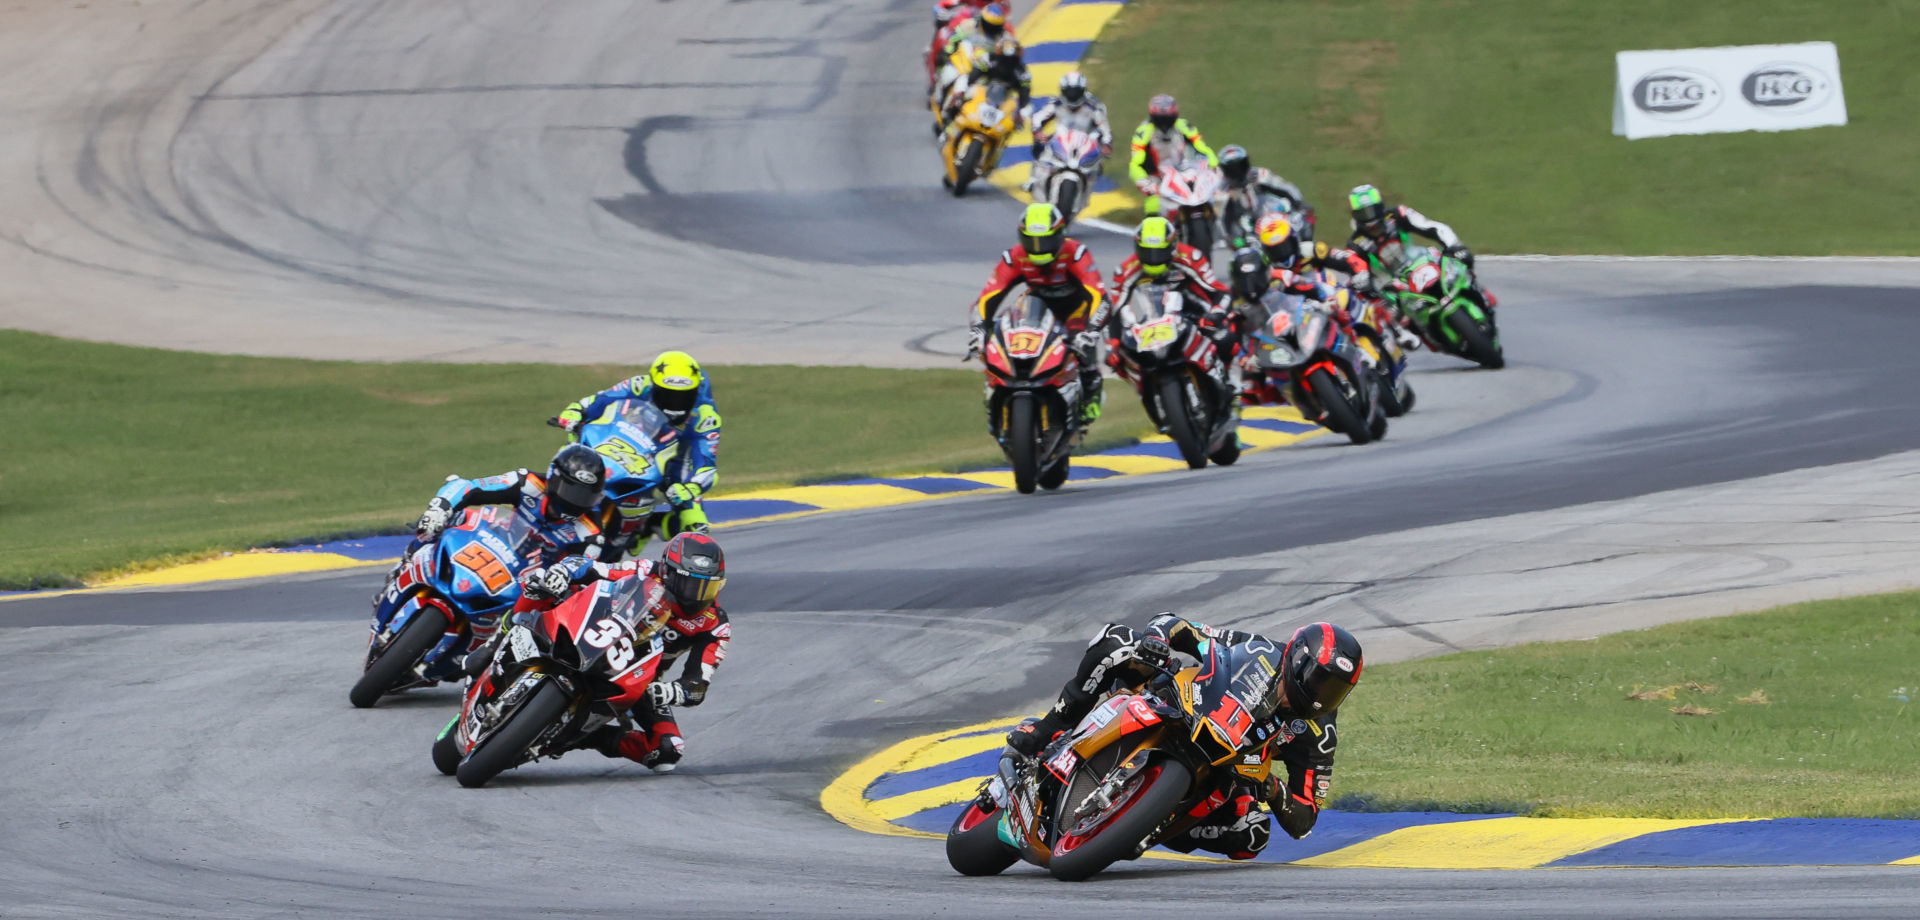 Action from a MotoAmerica Superbike race at Road Atlanta in 2020. Photo by Brian J. Nelson, courtesy of MotoAmerica.